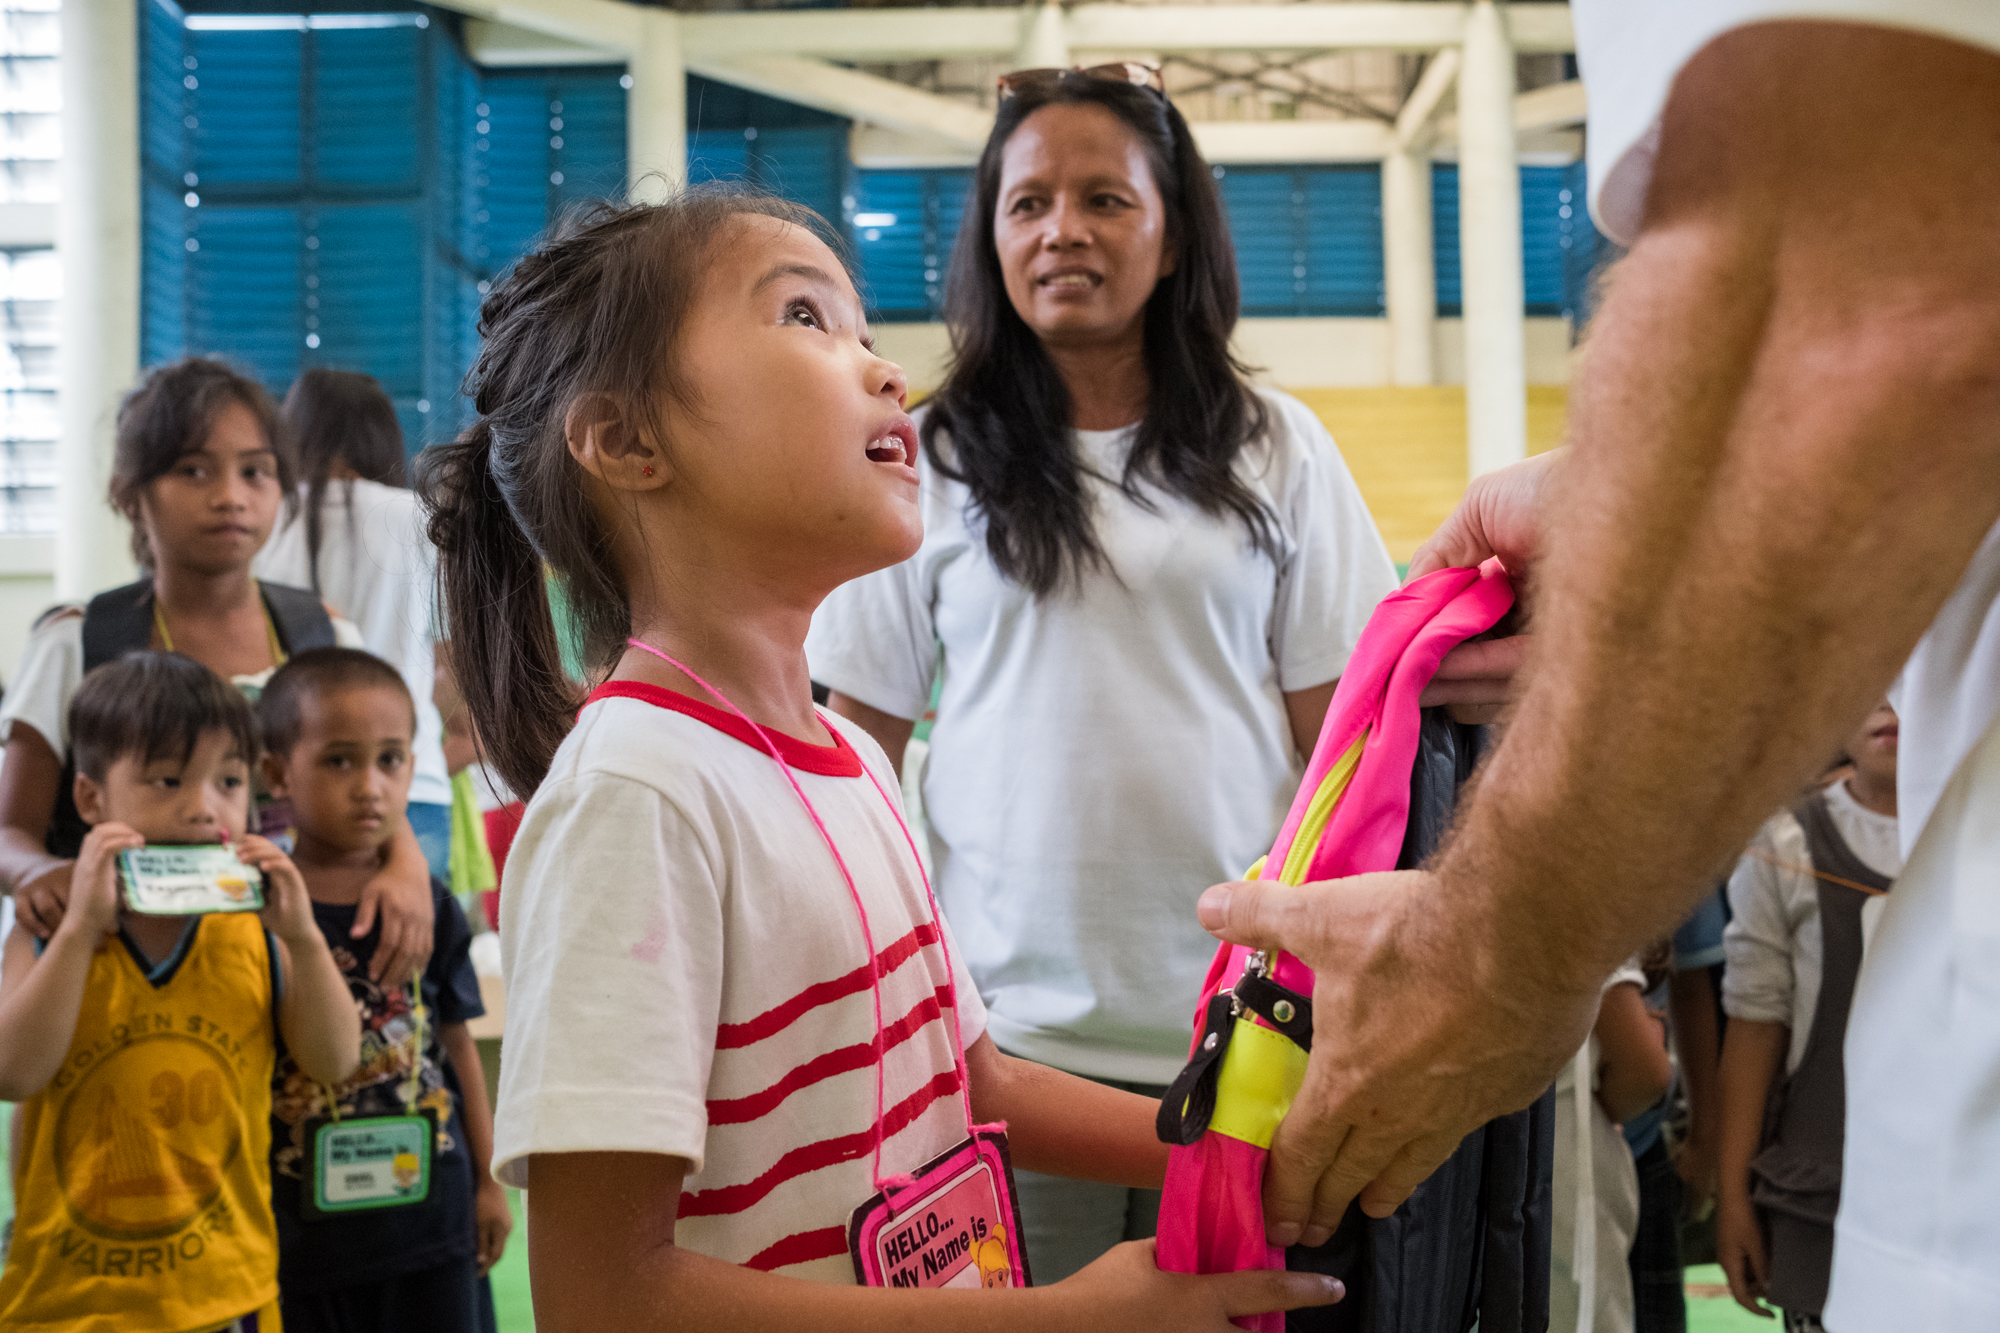 Frank Becker (off-camera right) distributes free backpacks filled with school supplies at a community-giving event in Cebu, Philippines.